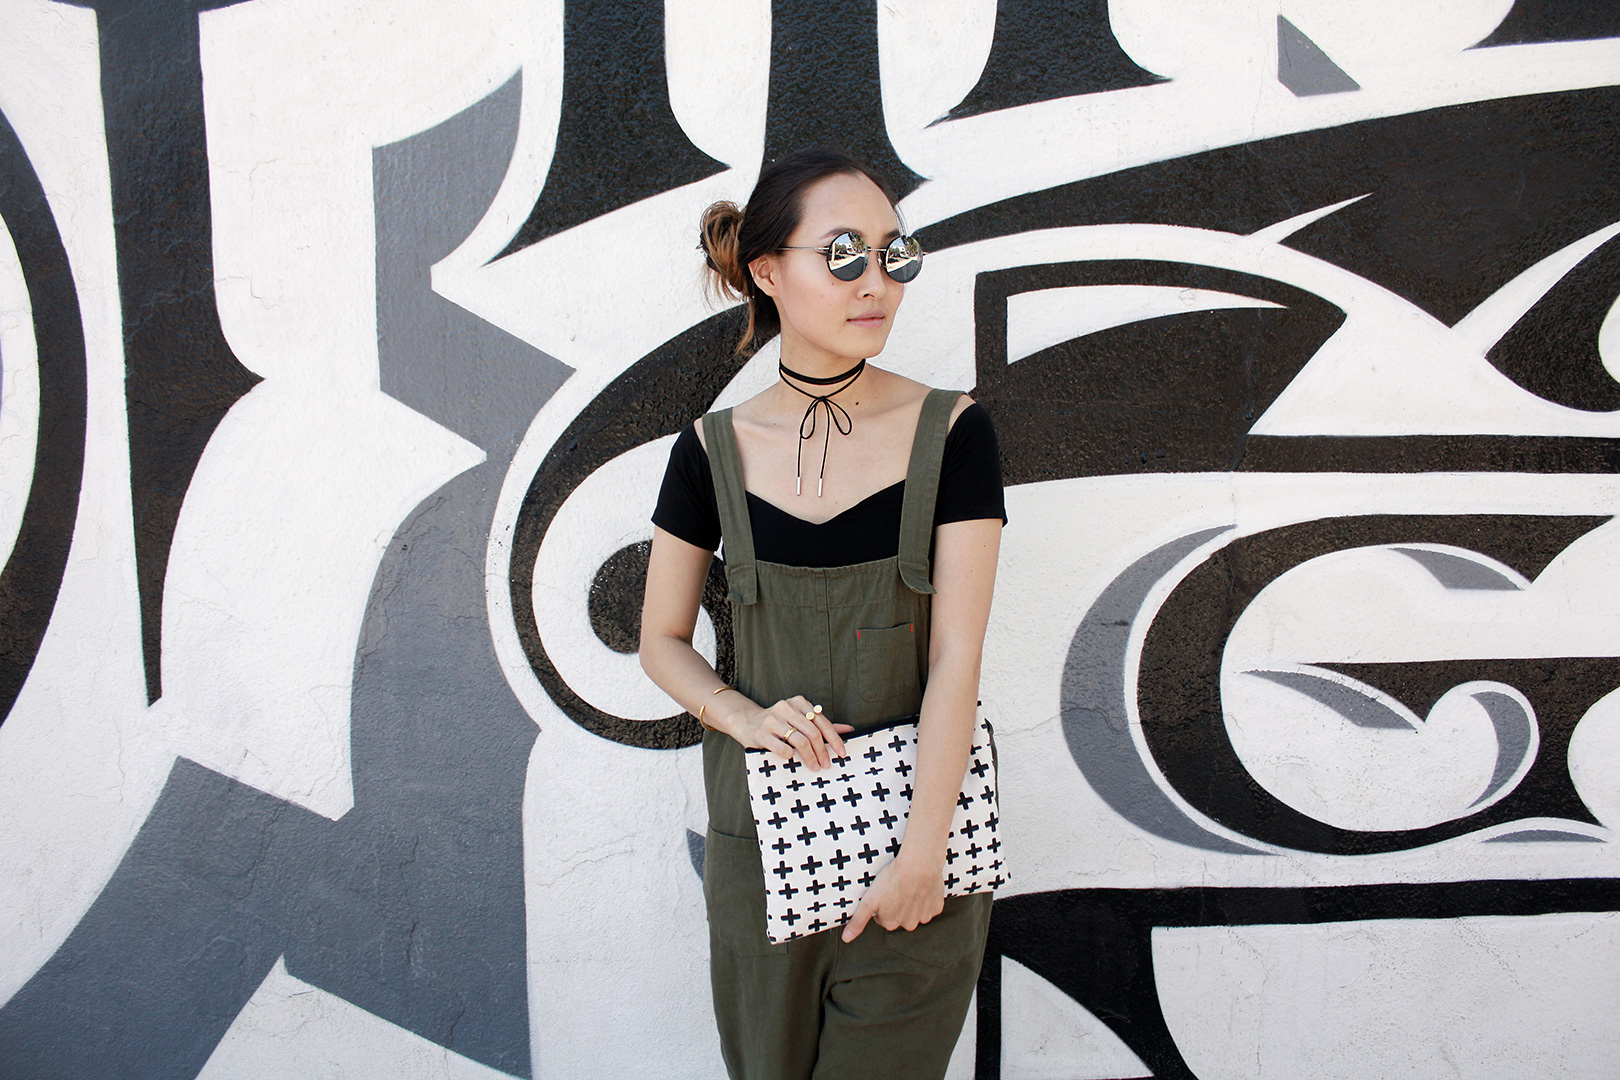 Sunglasses from Nasty Gal, choker necklace from Kavano, crop top from ASOS, overalls from Seoul, clutch from Butter